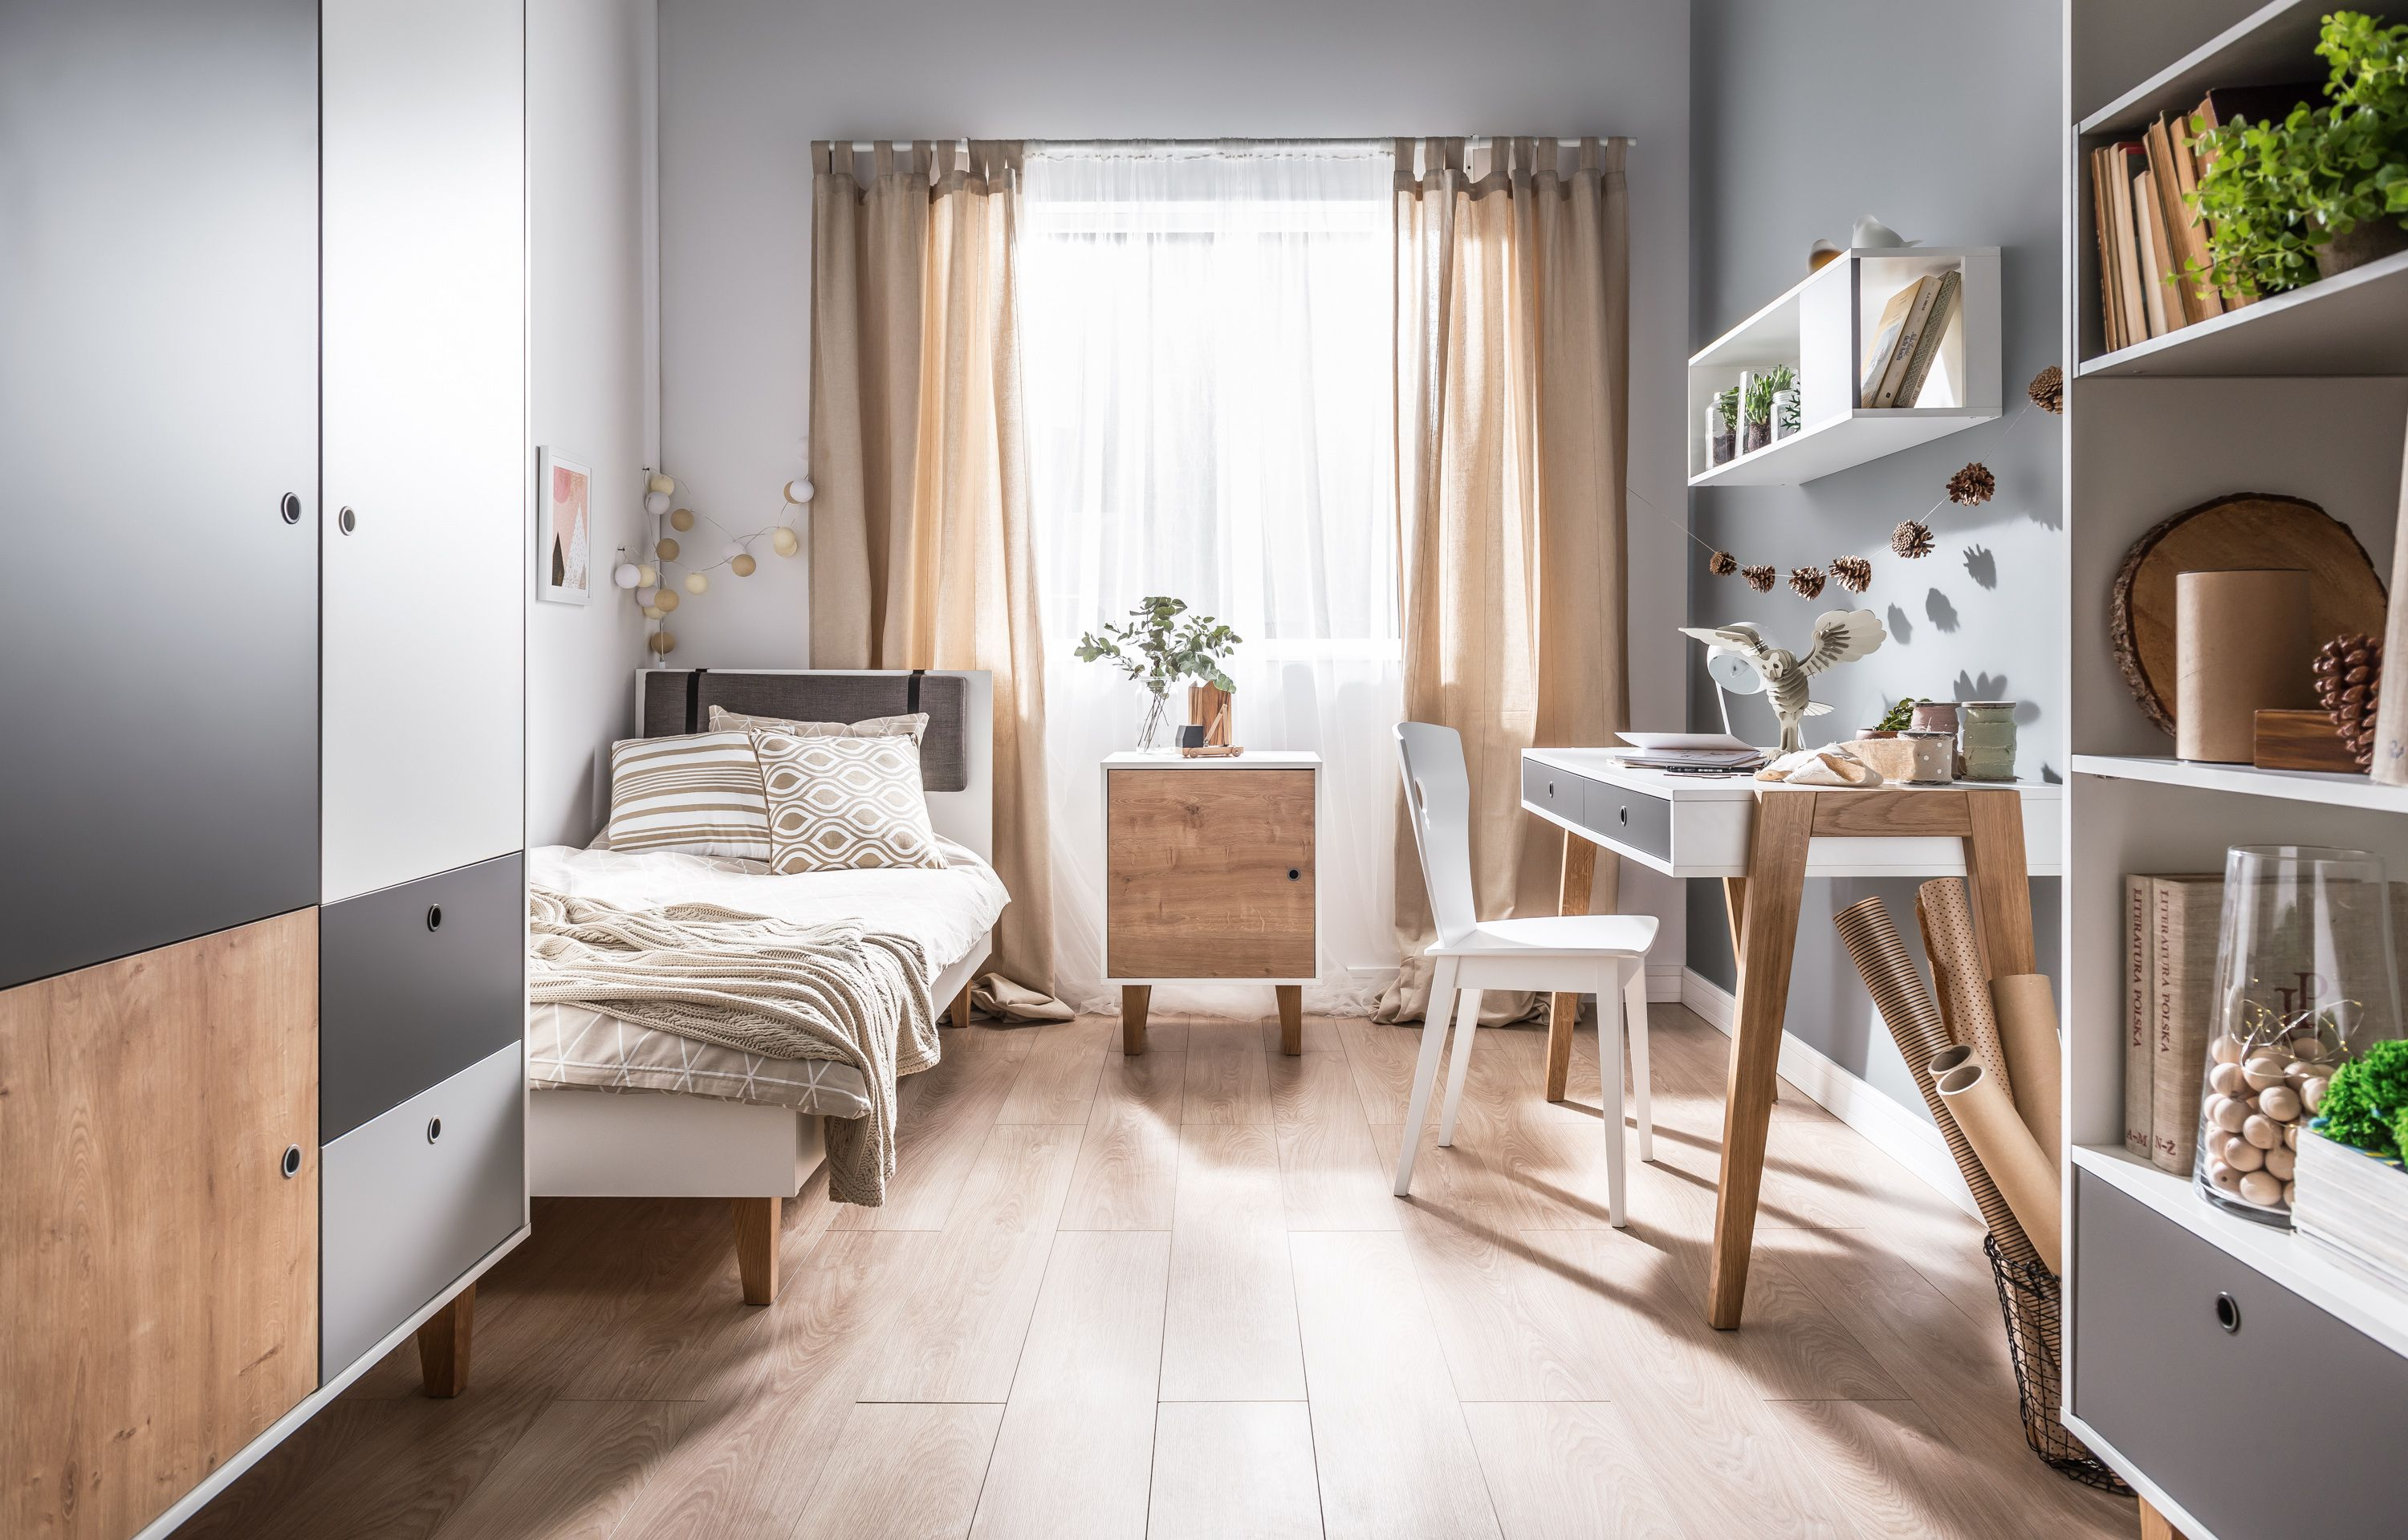 18 Small Bedroom Ideas To Fall In Love With Small